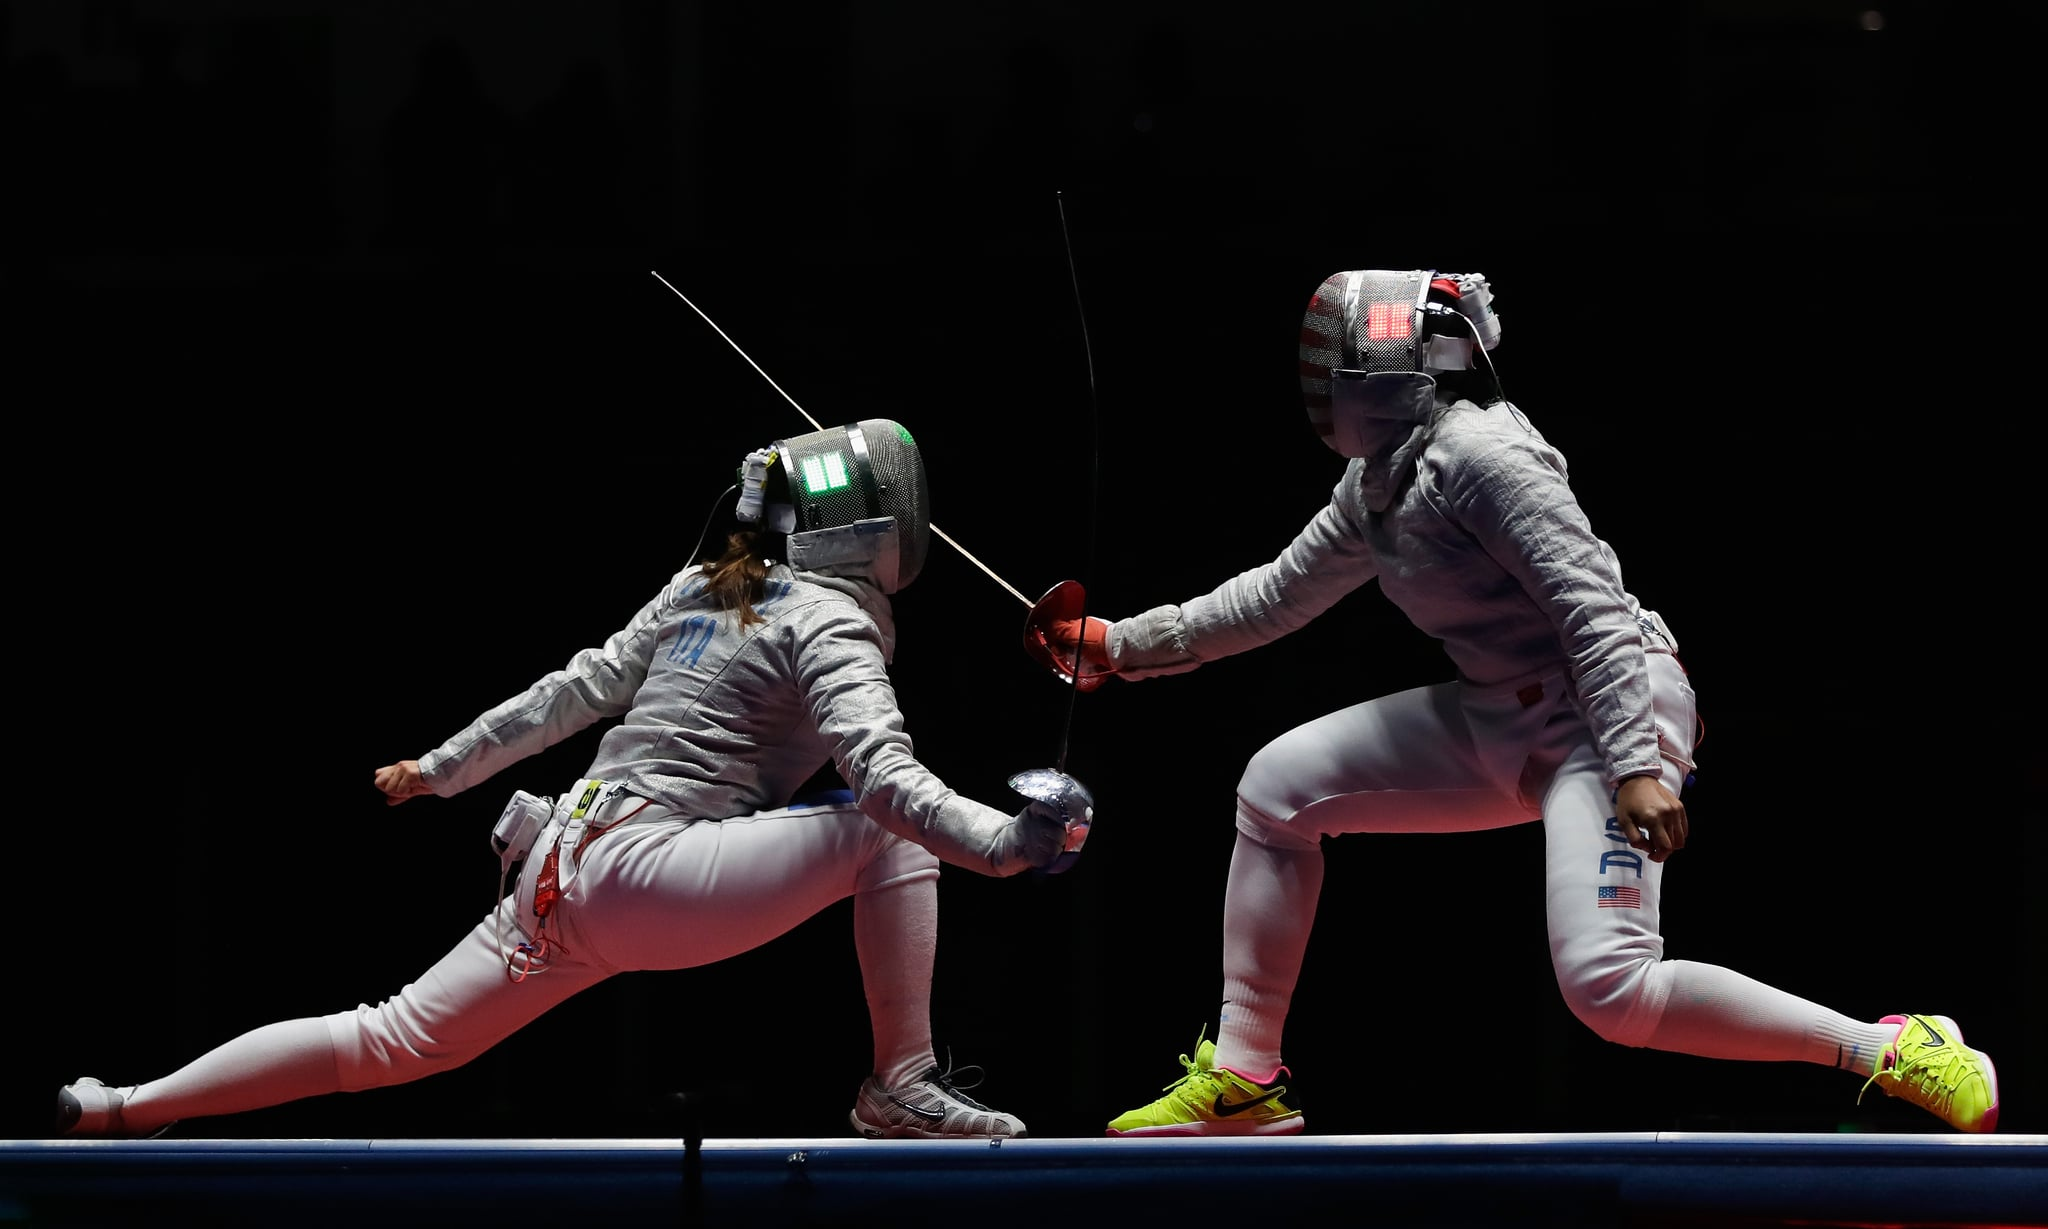 RIO DE JANEIRO, BRAZIL - AUGUST 13: Irene Vecchi of Italy competes against Ibtihaj Muhammad of the United States during the Women's Sabre Team bronze medal match between United States and Italy on Day 8 of the Rio 2016 Olympic Games at Carioca Arena 3 on August 13, 2016 in Rio de Janeiro, Brazil.  (Photo by Jamie Squire/Getty Images)